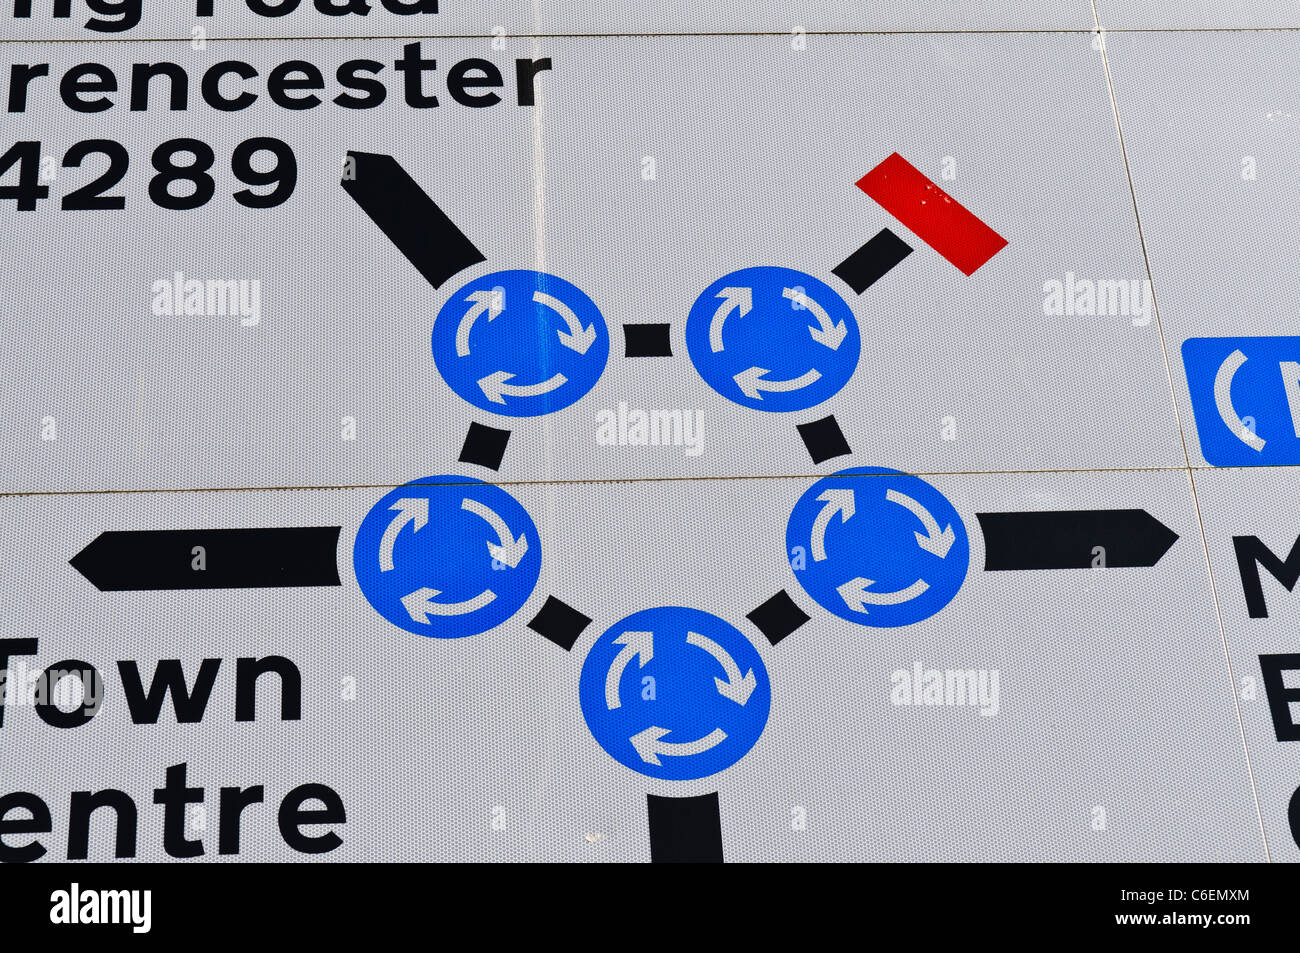 'The Magic Roundabout' in Swindon - a series of 5 small roundabouts making up a larger one. Voted the scariest - Stock Image